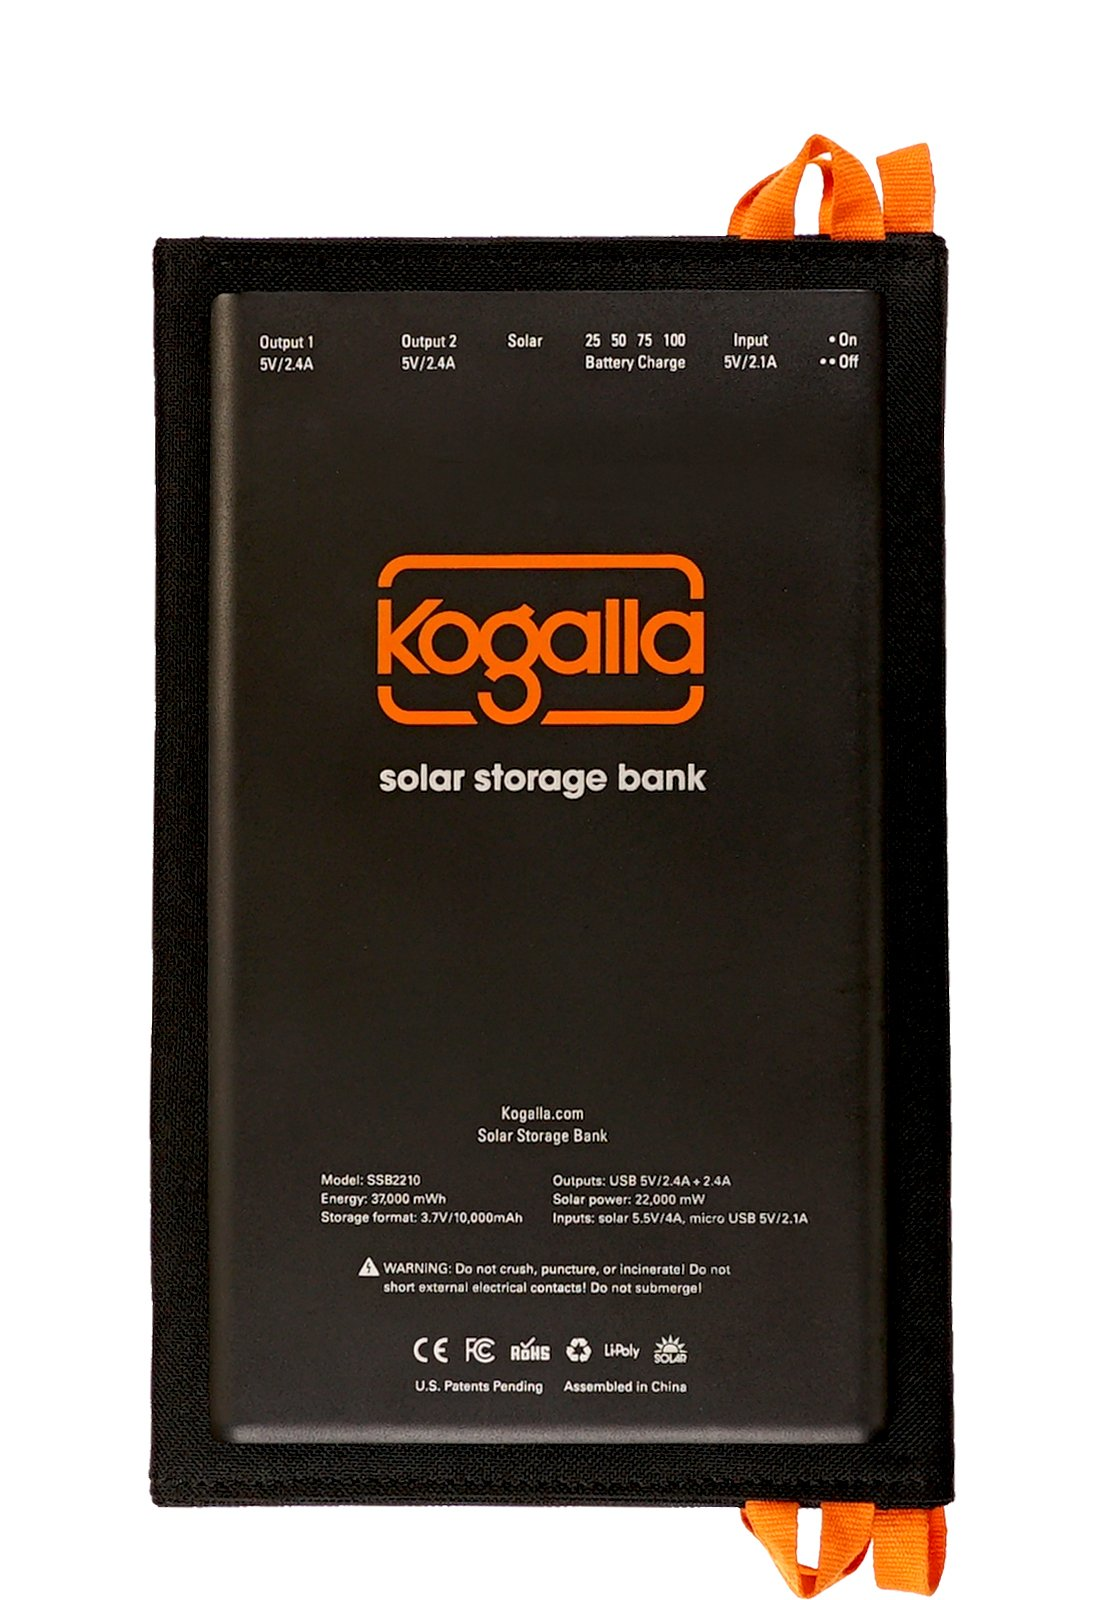 Kogalla SSB2210 Solar Storage Bank - First High-Power, Foldable Solar Array with Integrated Ultra-Slim, Rechargeable Power Pack by Kogalla